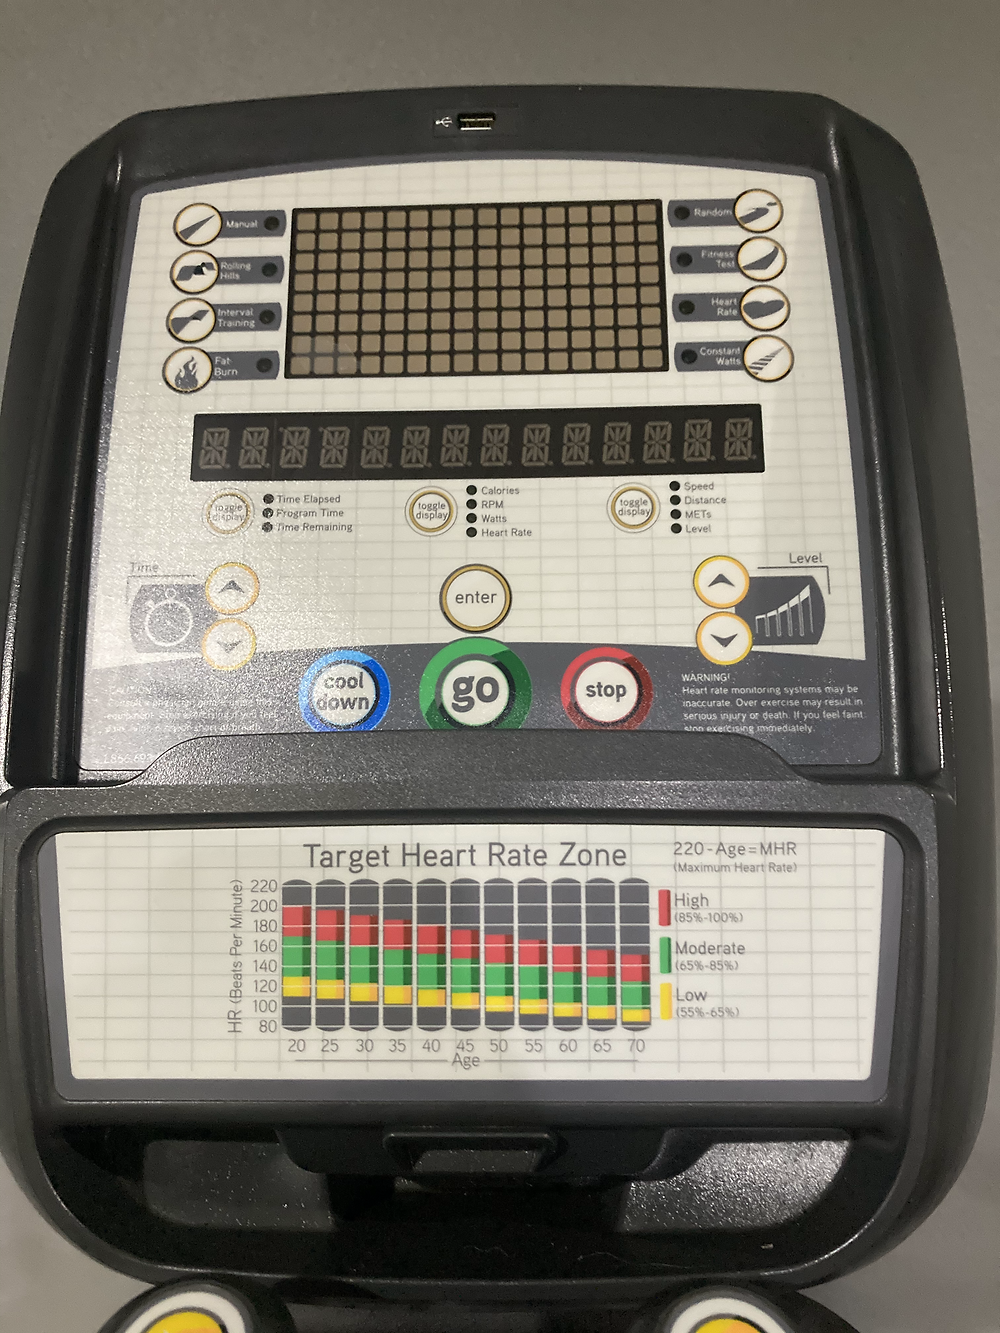 Image of the elliptical screen found in Forge 24/7 Best gym in South Tampa. Used to track calories, speed and resistance